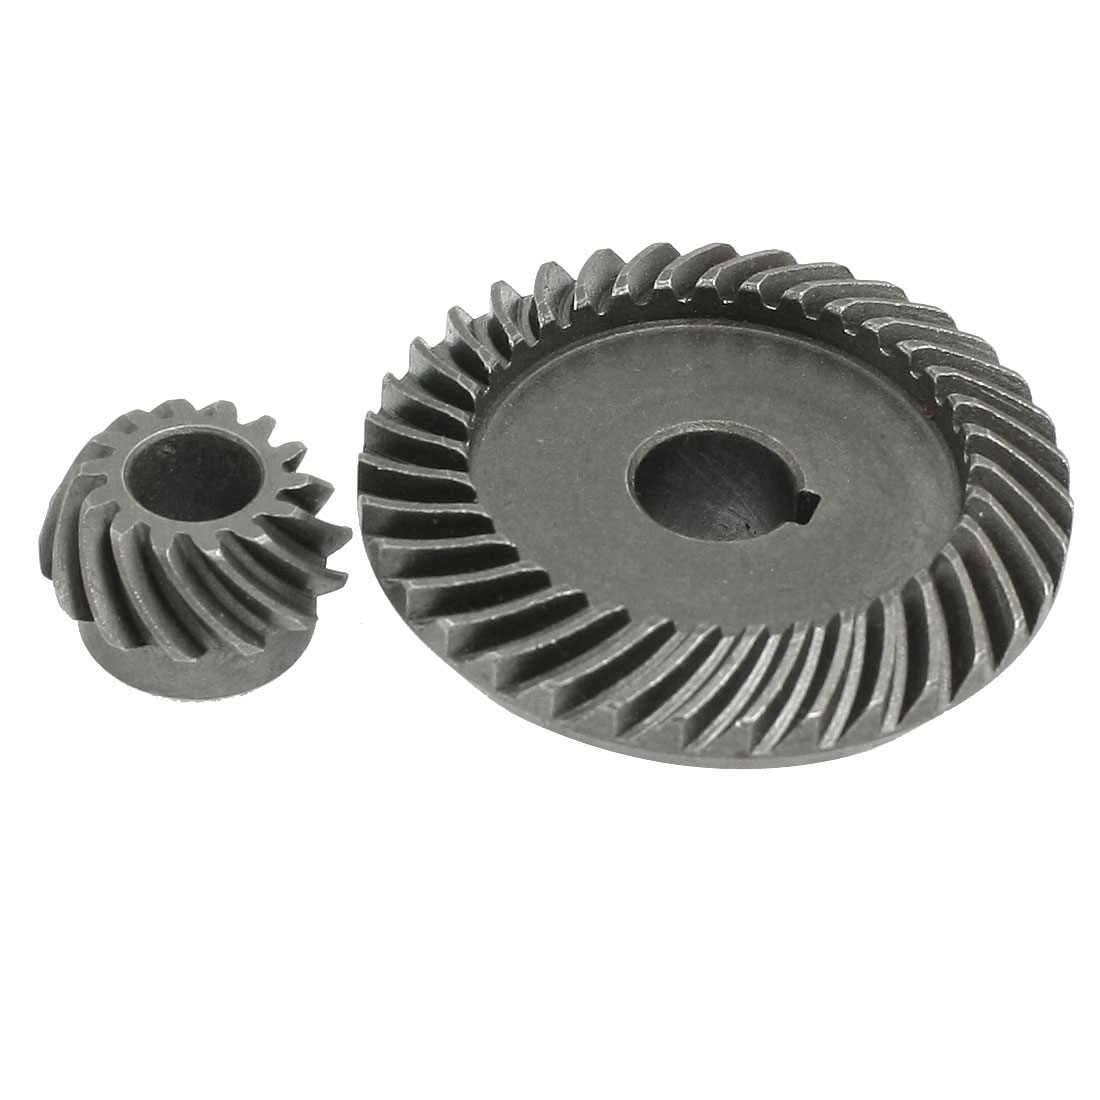 2 Pcs Repair Parts Gray Metal Angle Grinder Gear for LG 100 TGC-100SA